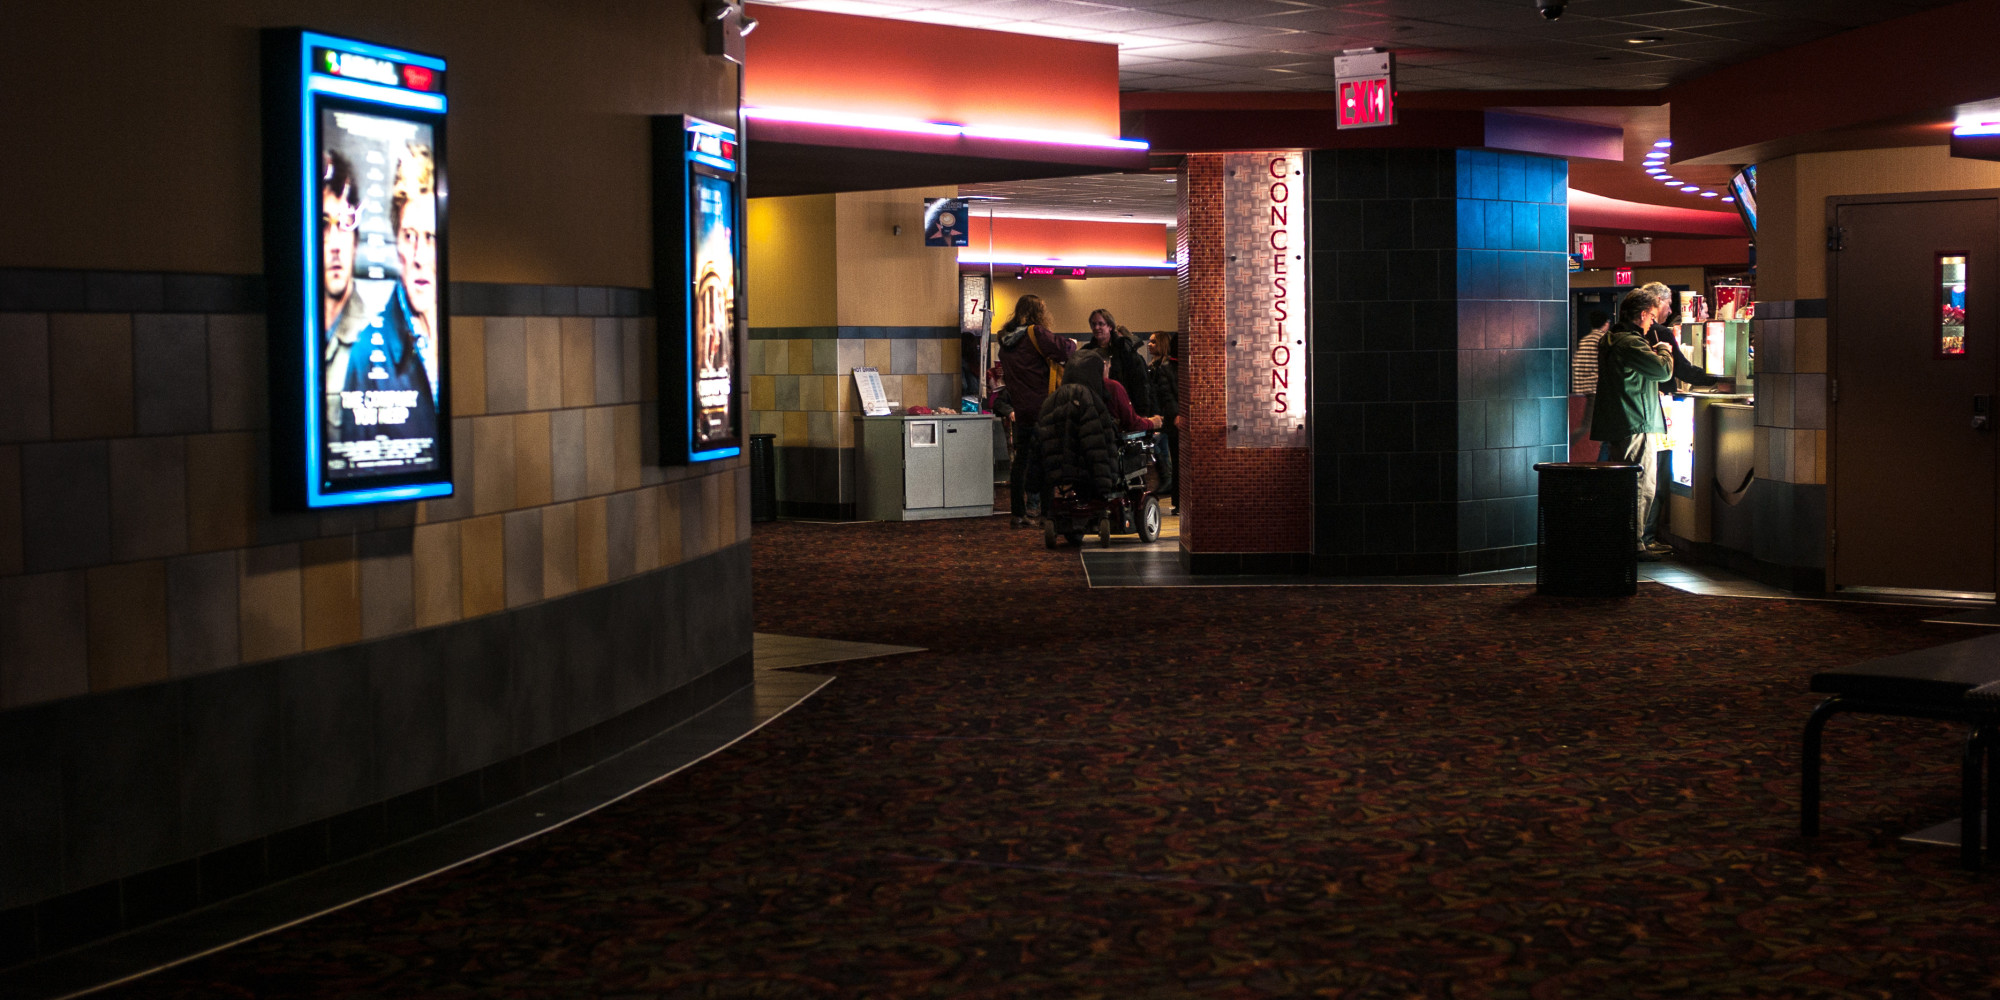 Buy movie tickets in advance, find movie times, watch trailers, read movie reviews, and more at Fandango.